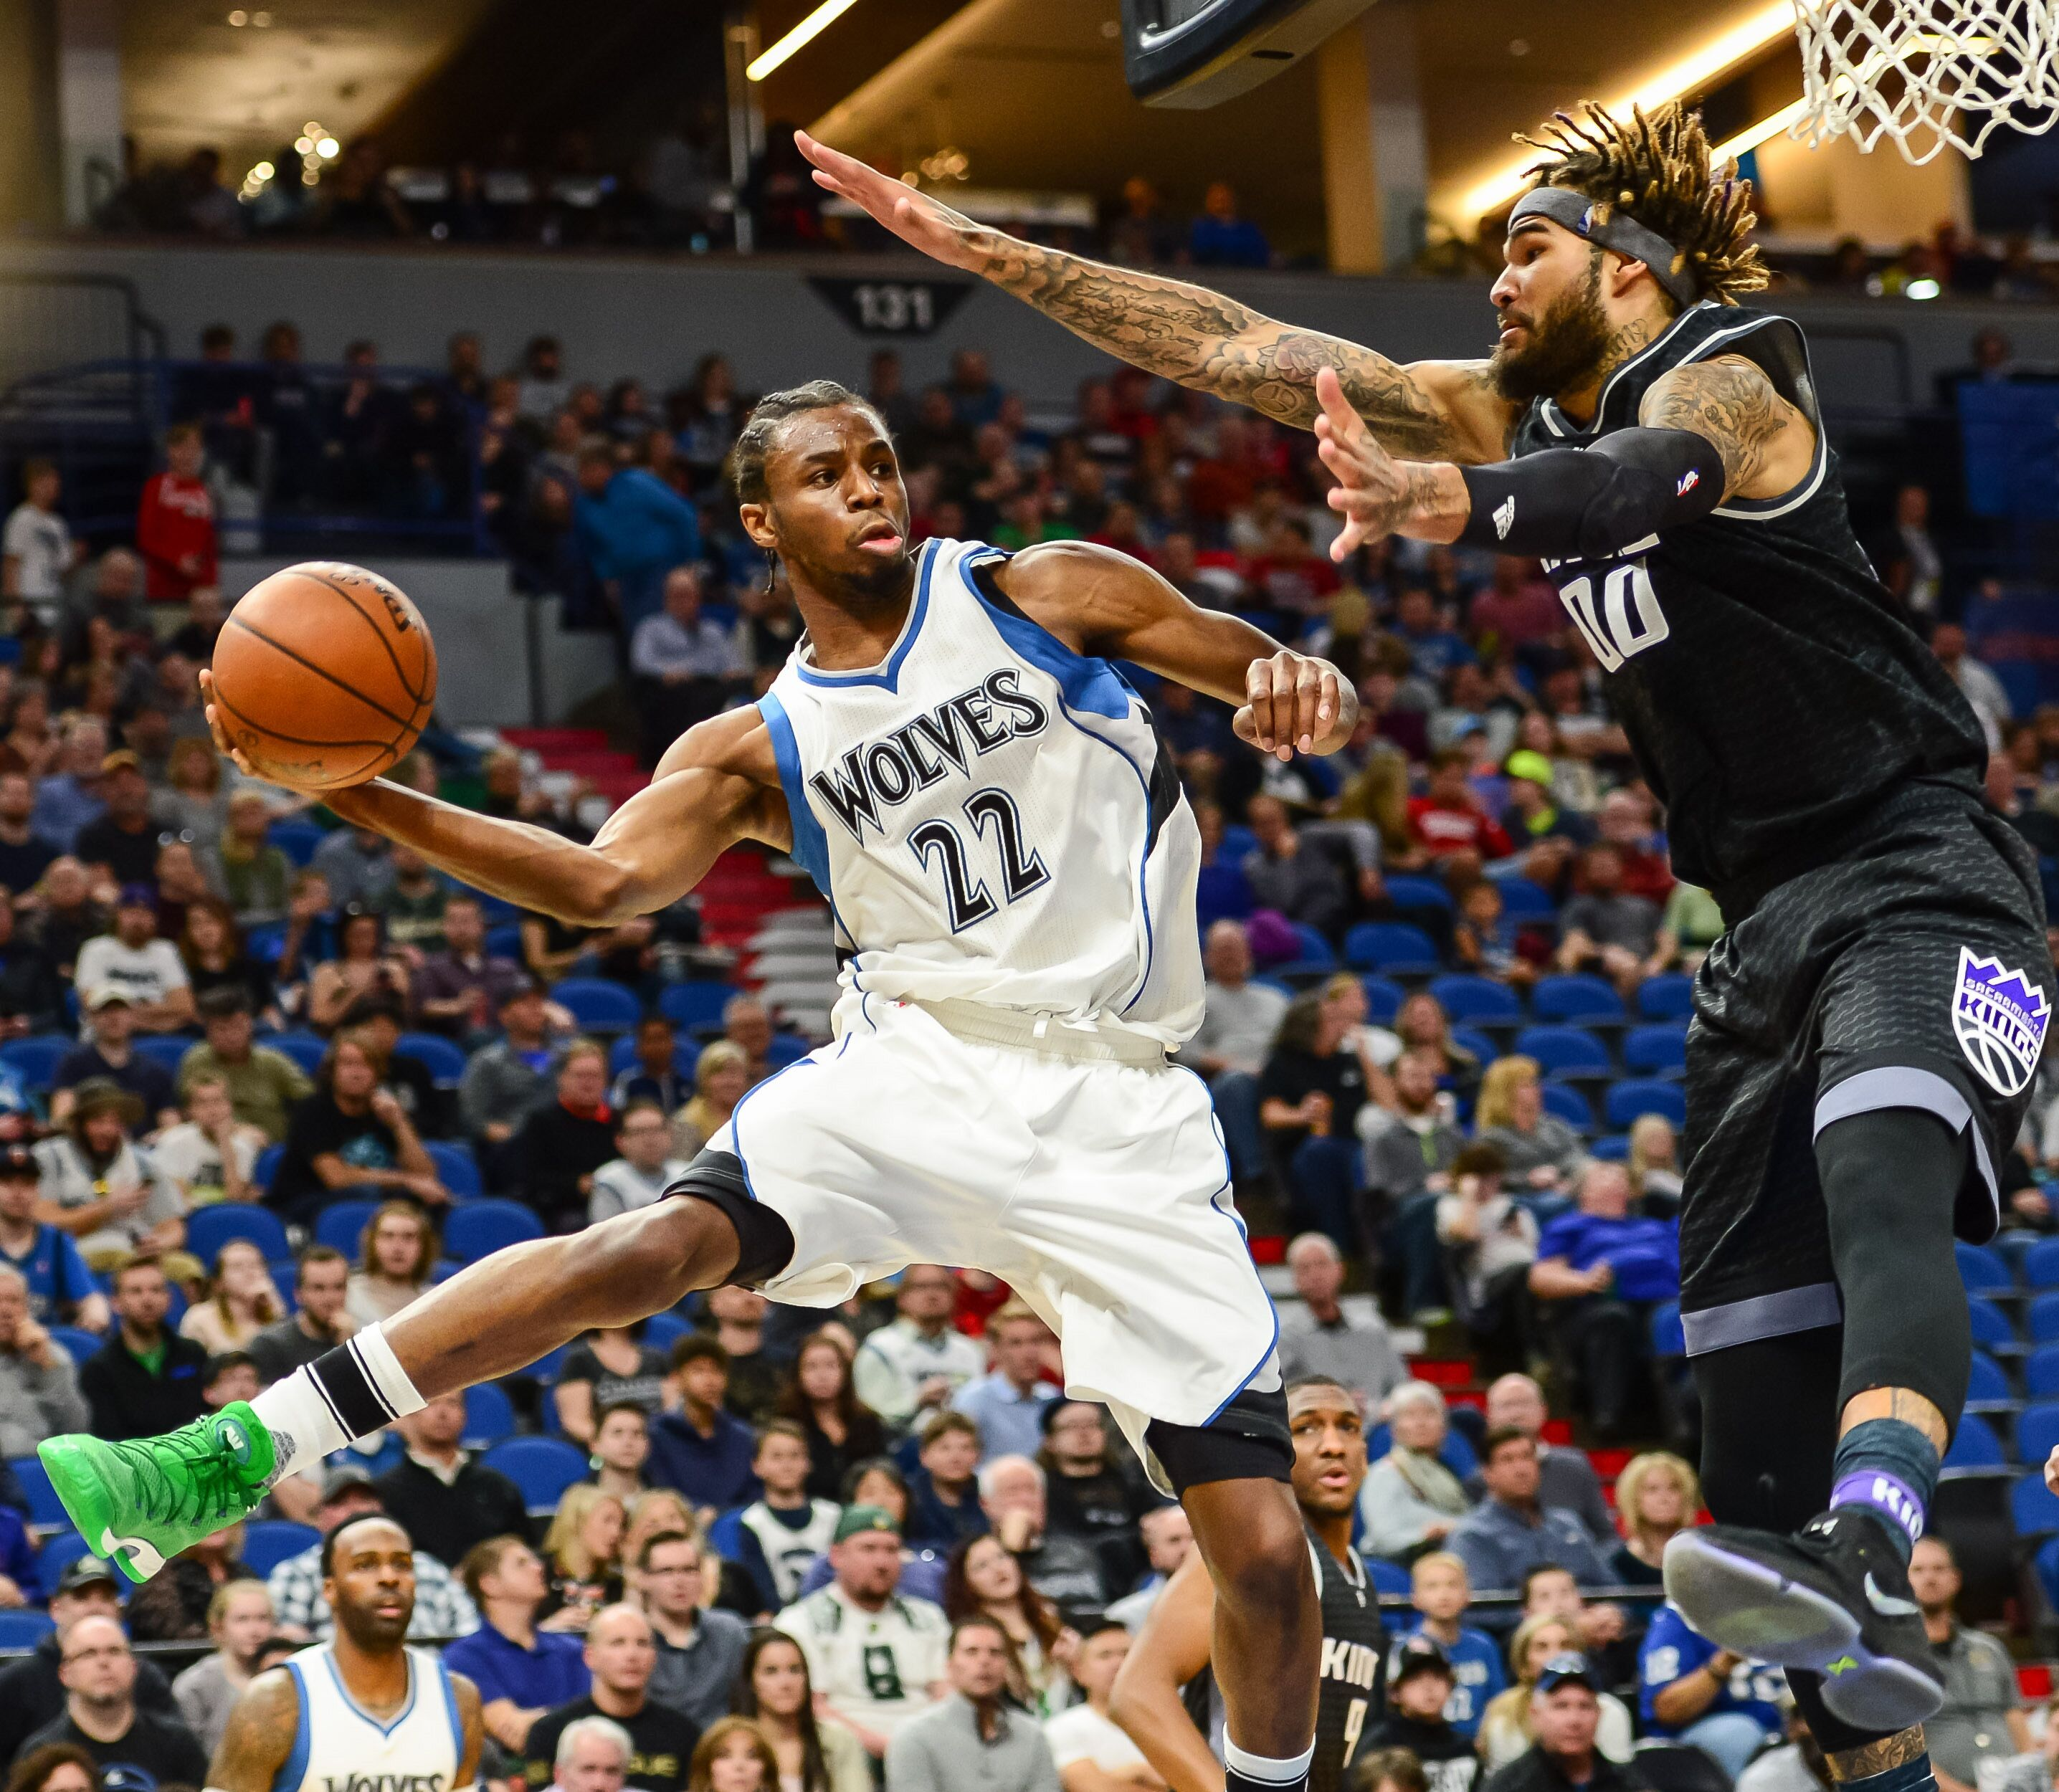 Minnesota Timberwolves: Timberwolves' Andrew Wiggins Will Eventually Become Elite